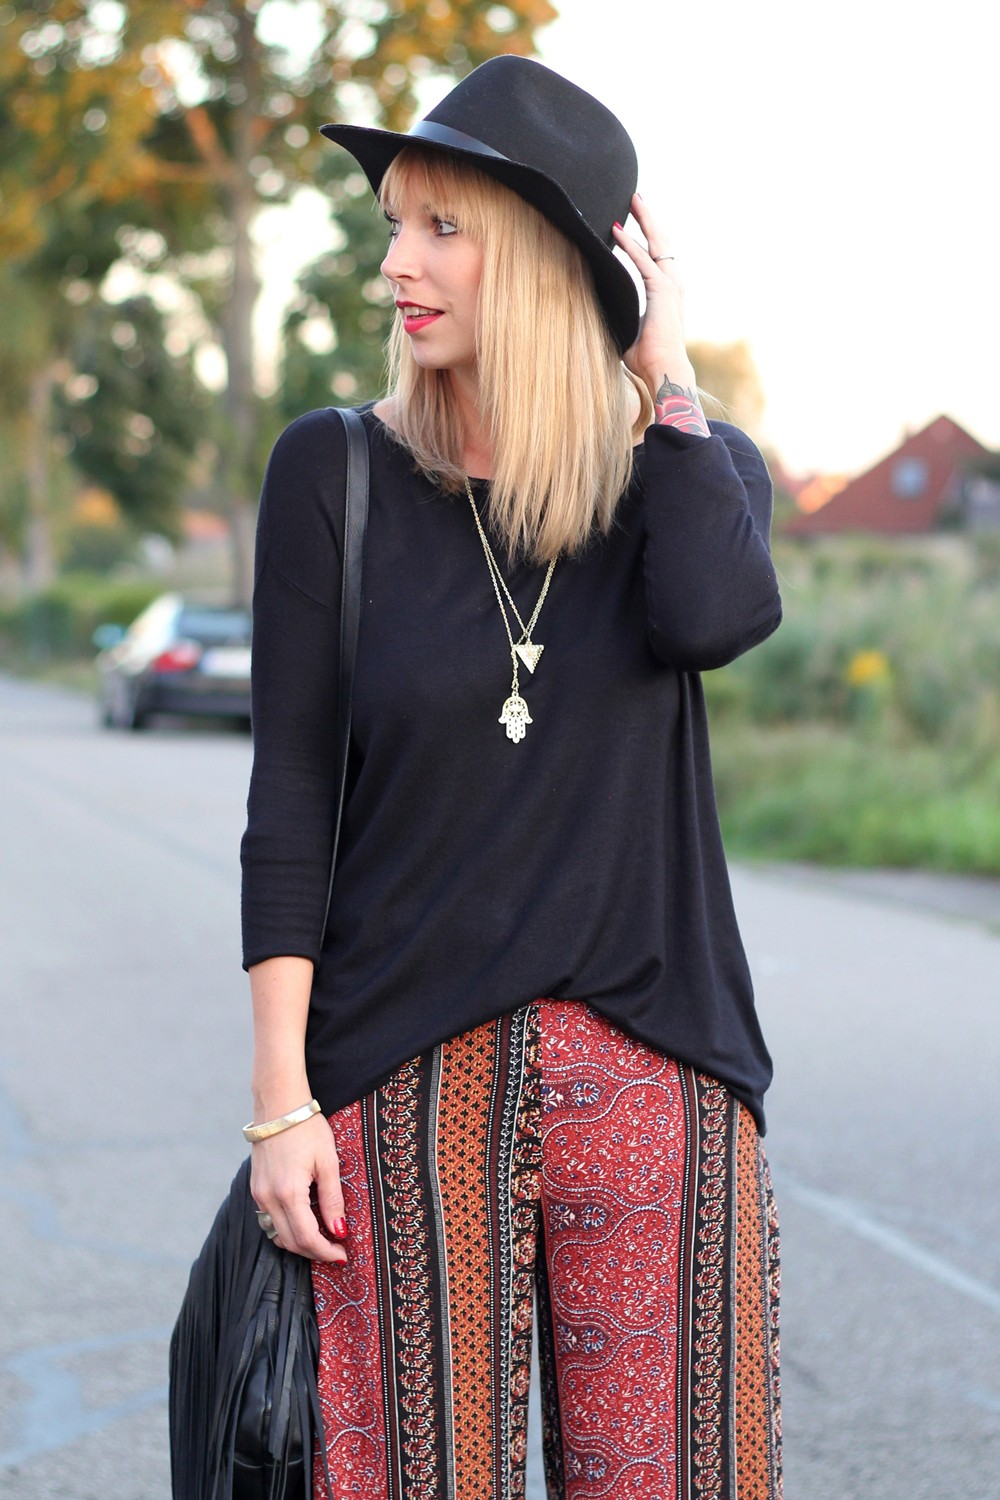 Fashinblogger-Karlsruhe-Mannheim-Outfit-Palazzohosen-Pull-and-Bear-Sweater-Hut-Fransentasche-7